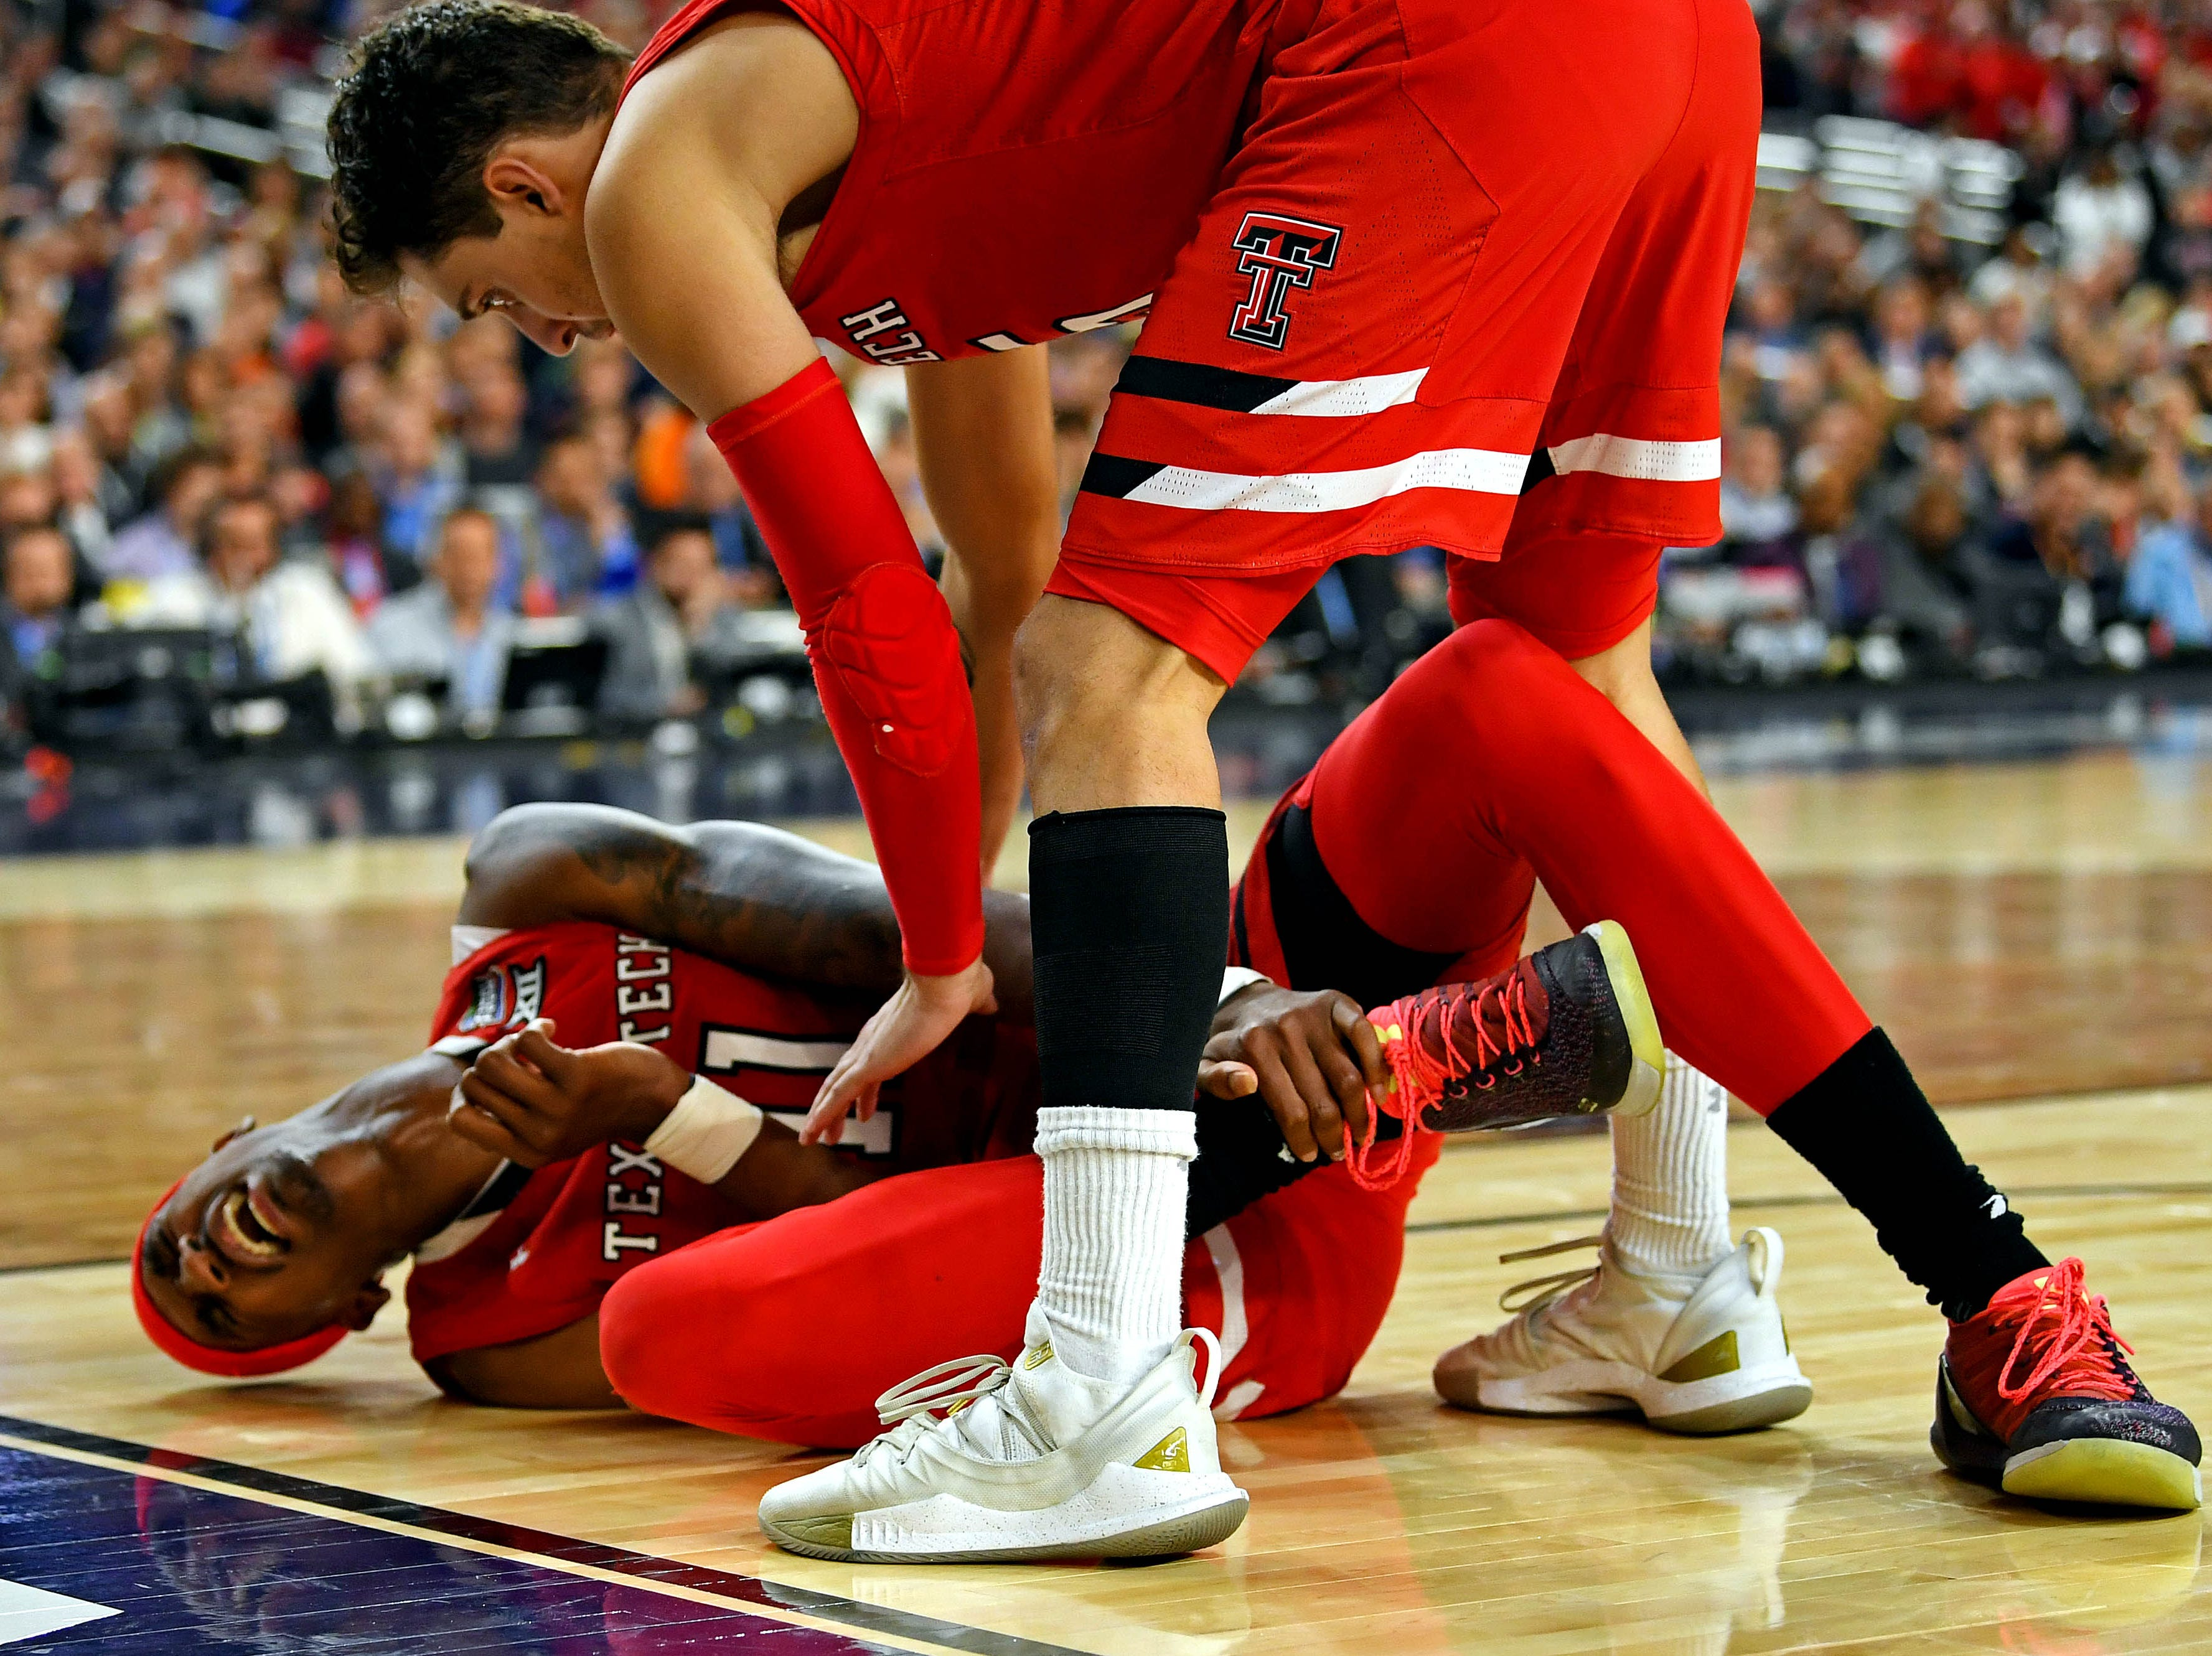 Apr 6, 2019; Minneapolis, MN, USA; Texas Tech Red Raiders forward Tariq Owens (11) reacts after an injury during the second half against the Michigan State Spartans in the semifinals of the 2019 men's Final Four at US Bank Stadium. Mandatory Credit: Bob Donnan-USA TODAY Sports